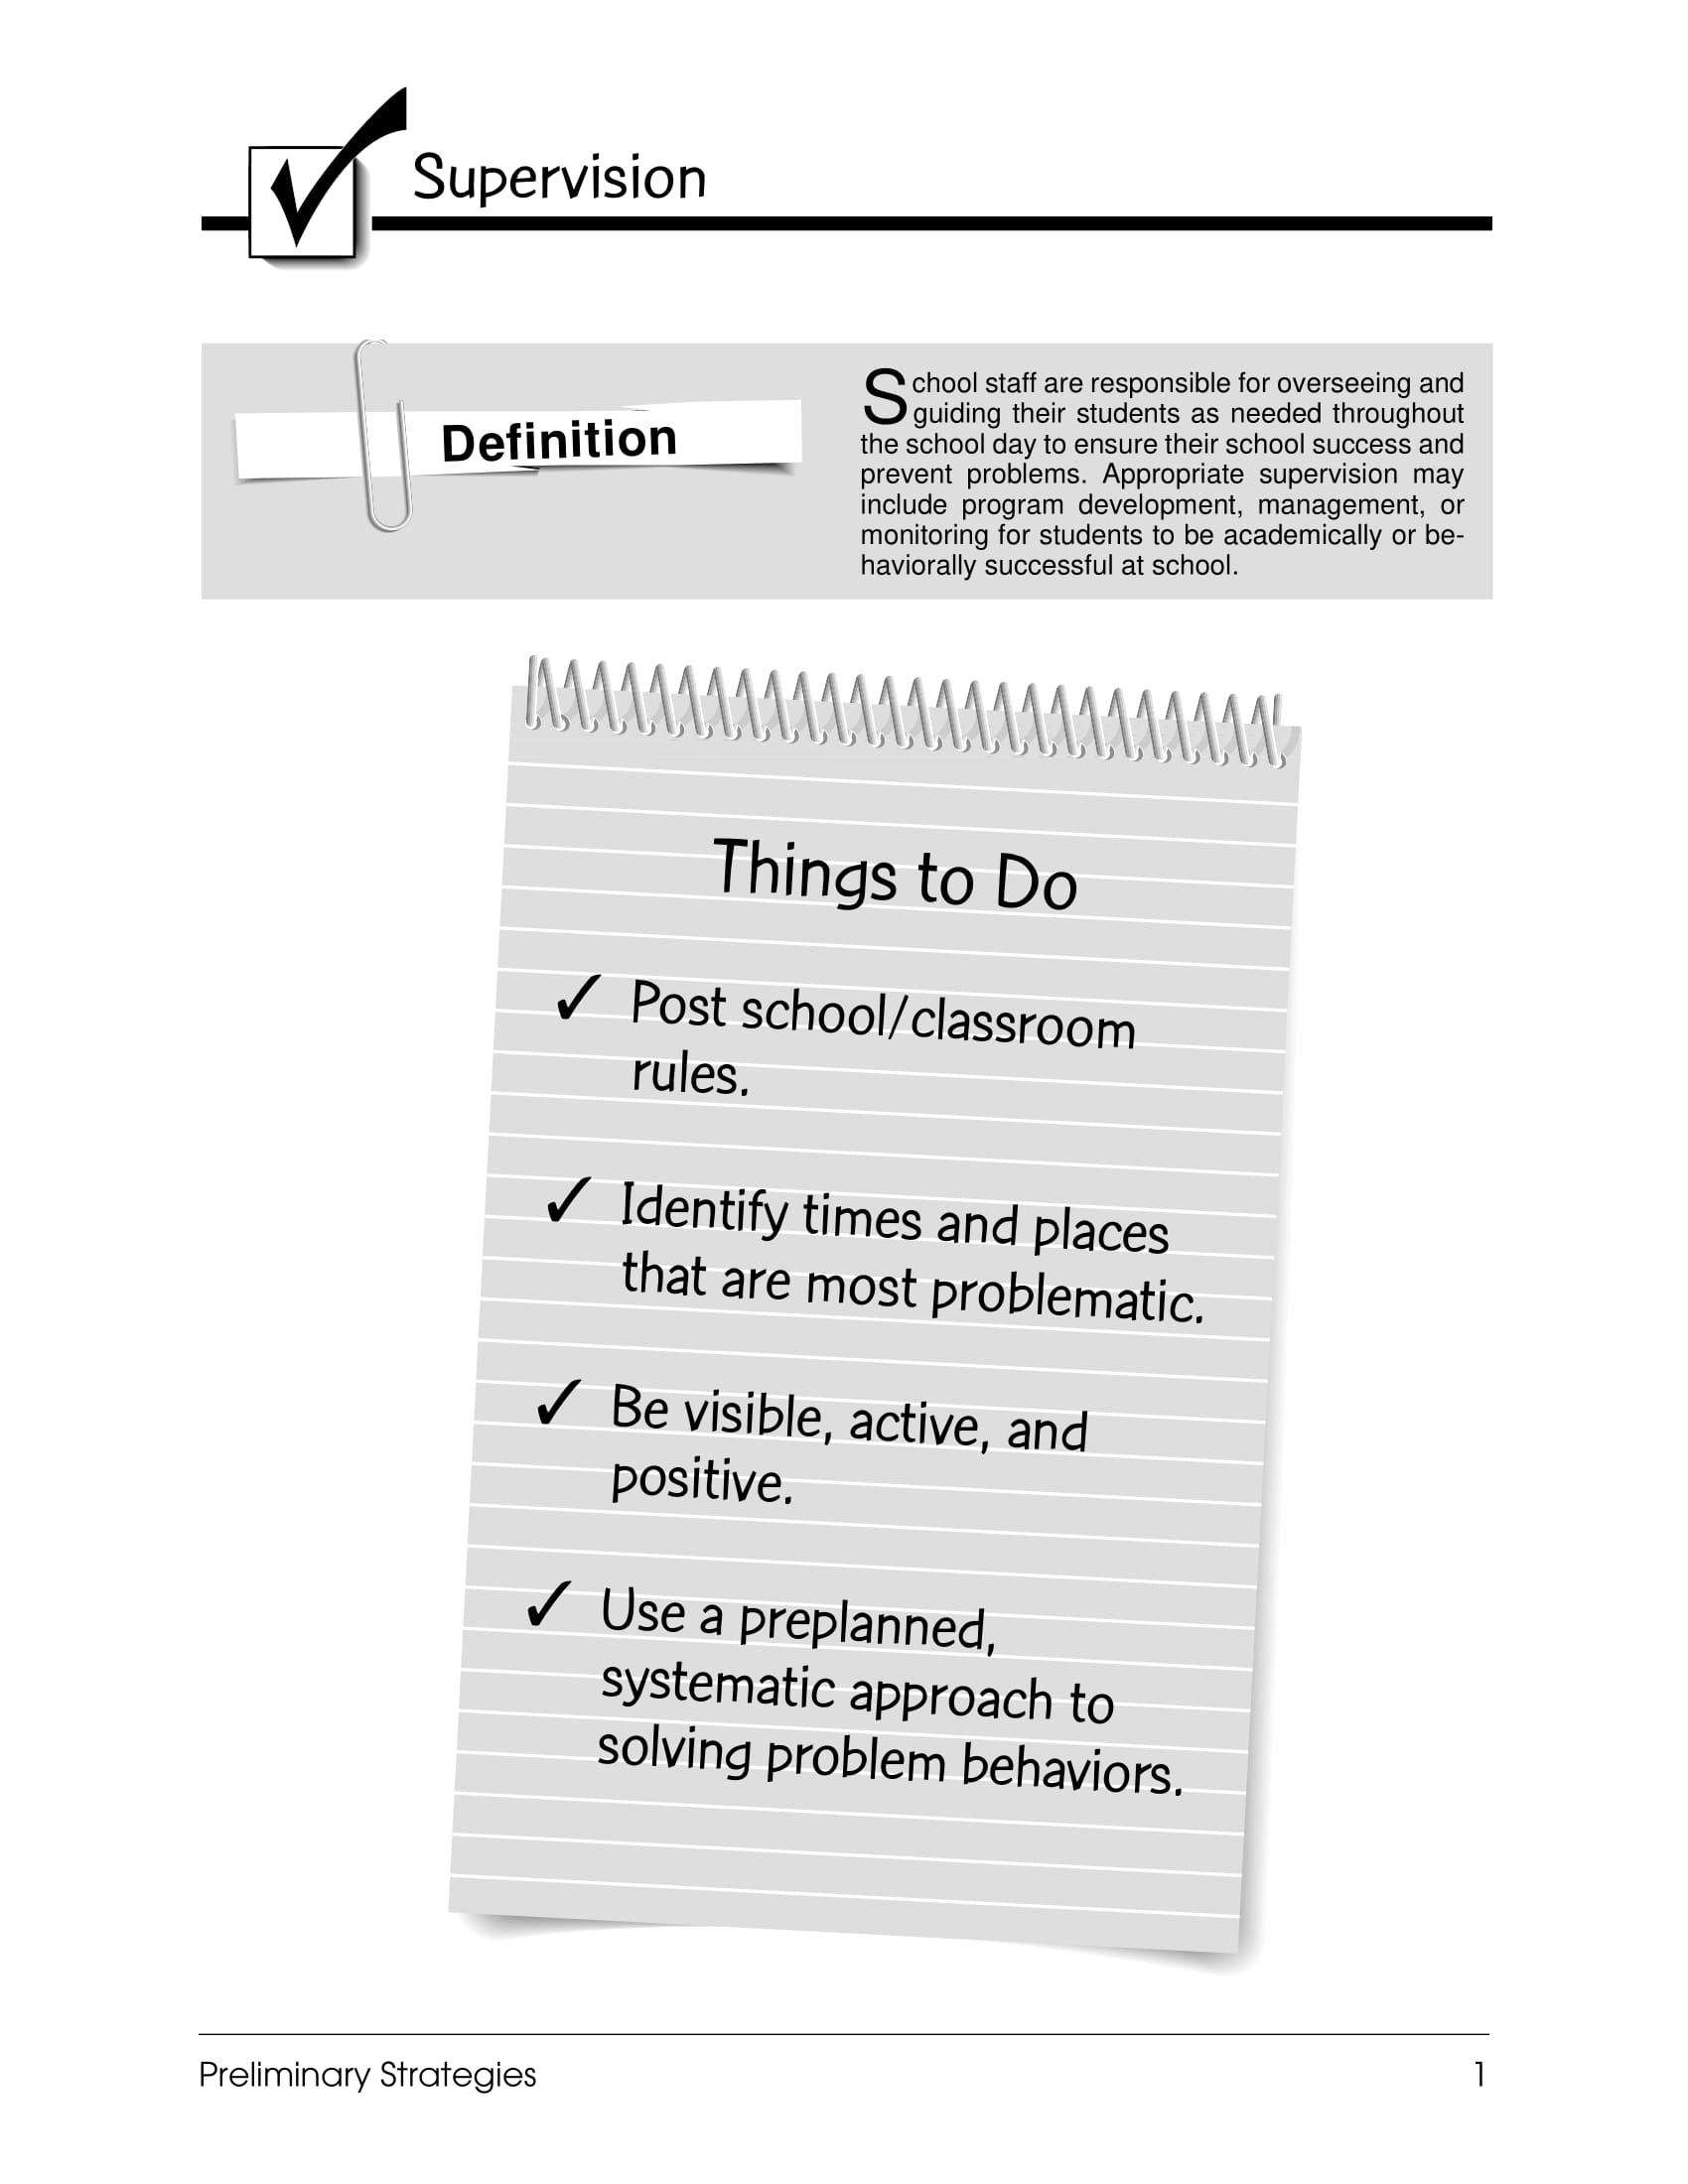 basic supervision checklist example